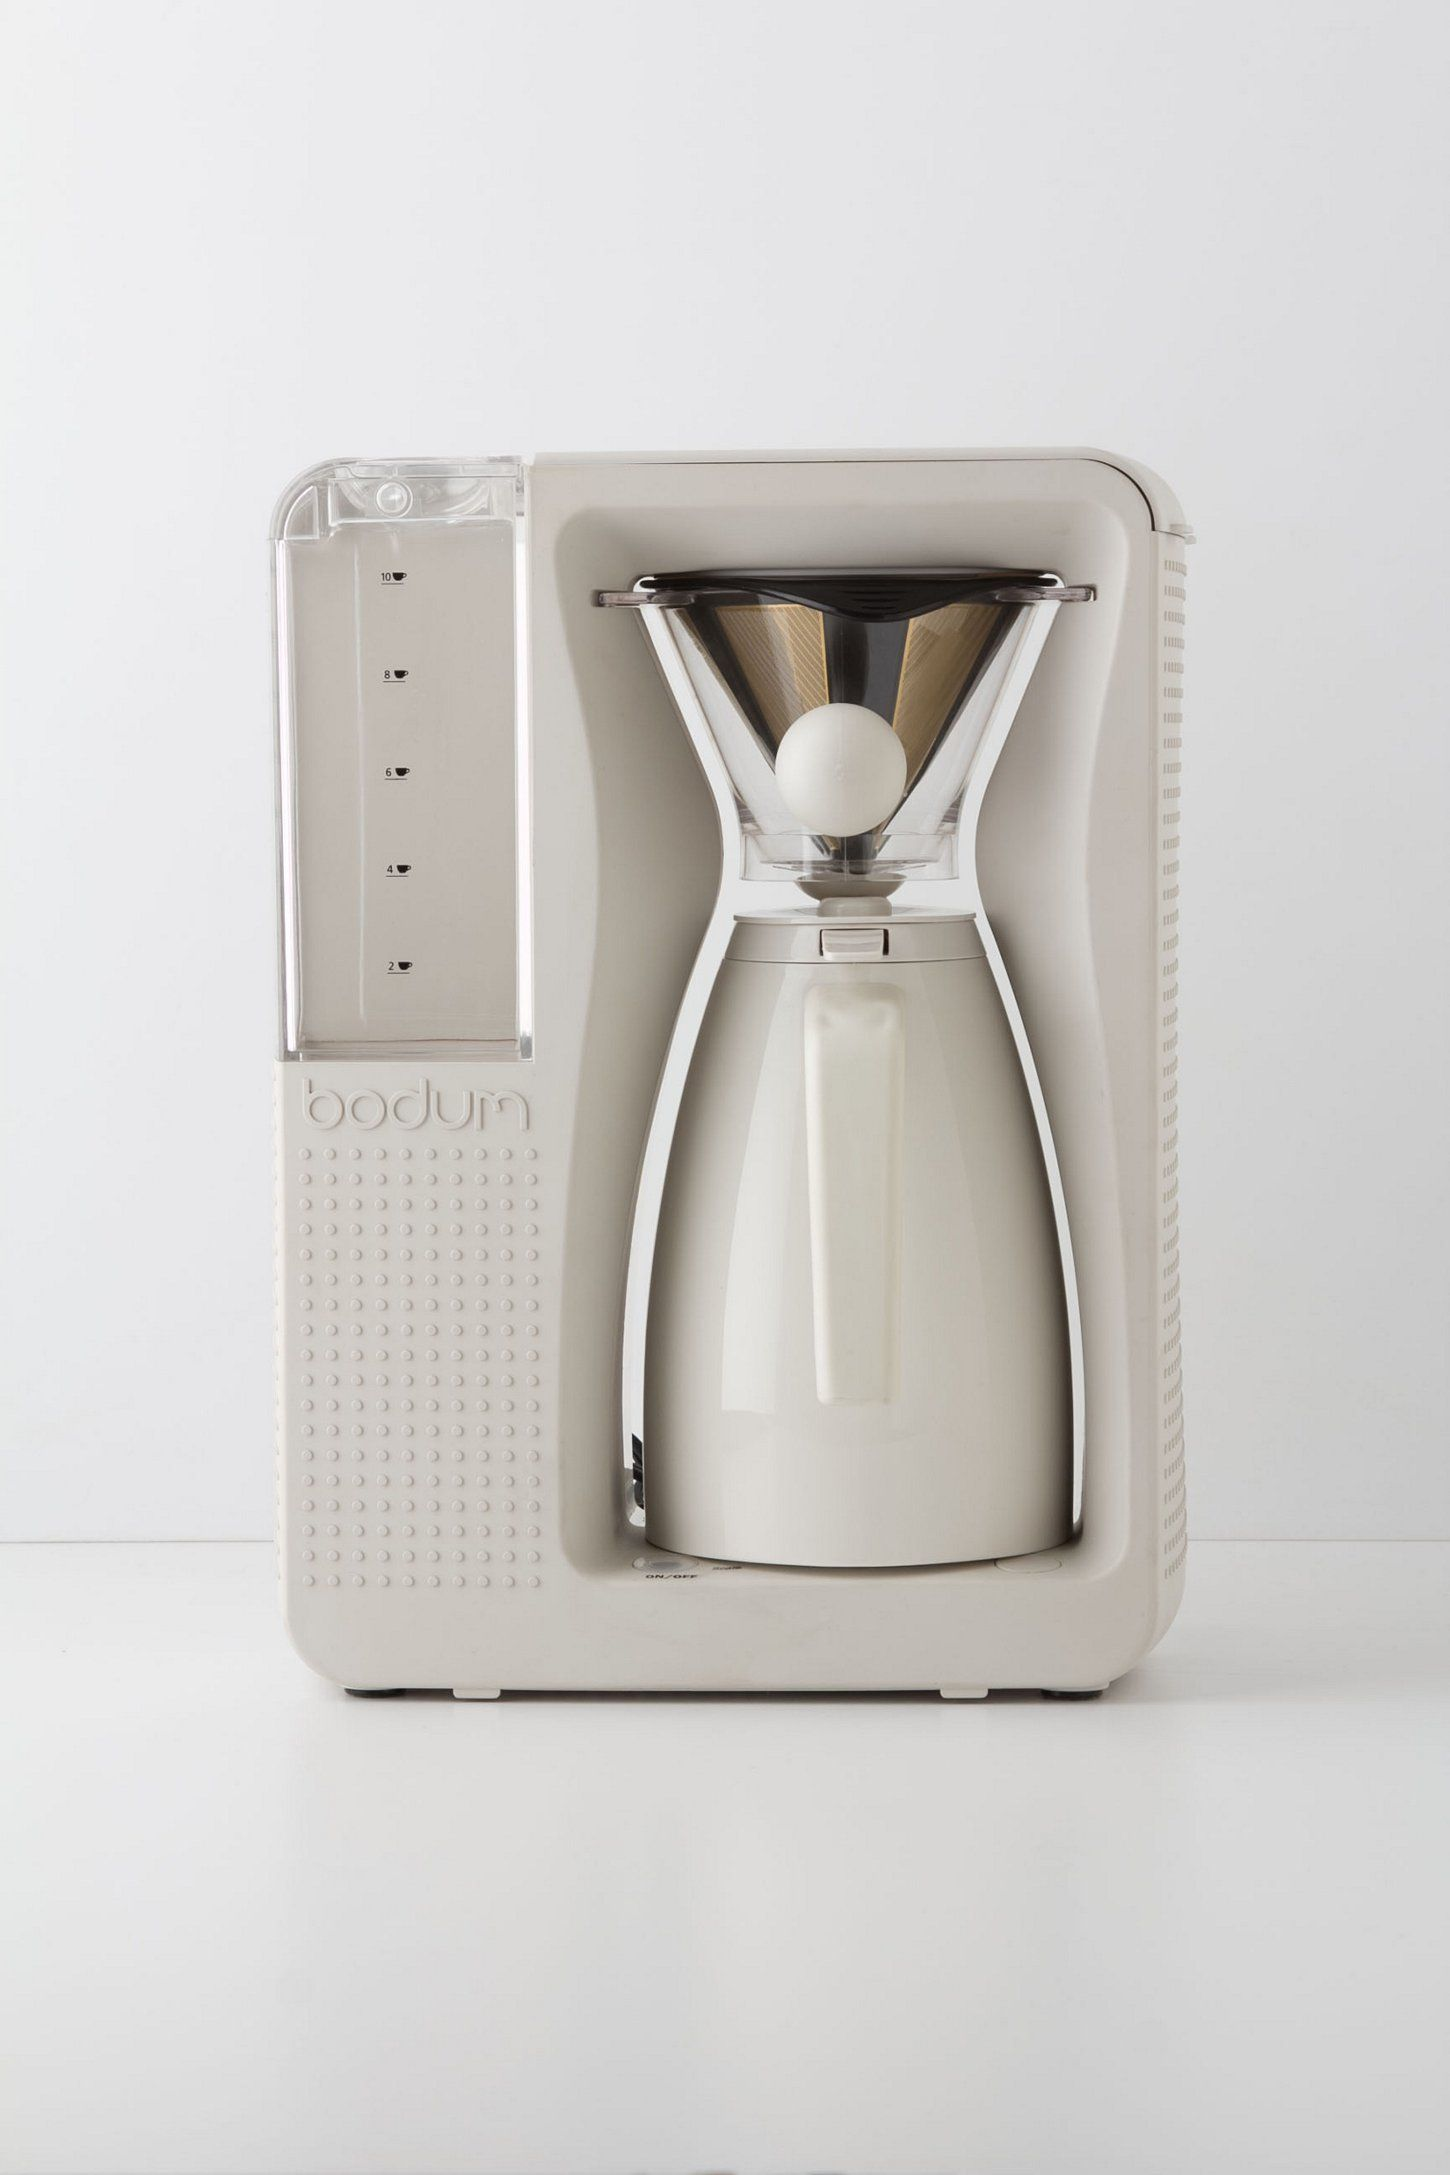 Bodum Bistro Brew Coffee Maker The Products Coffee